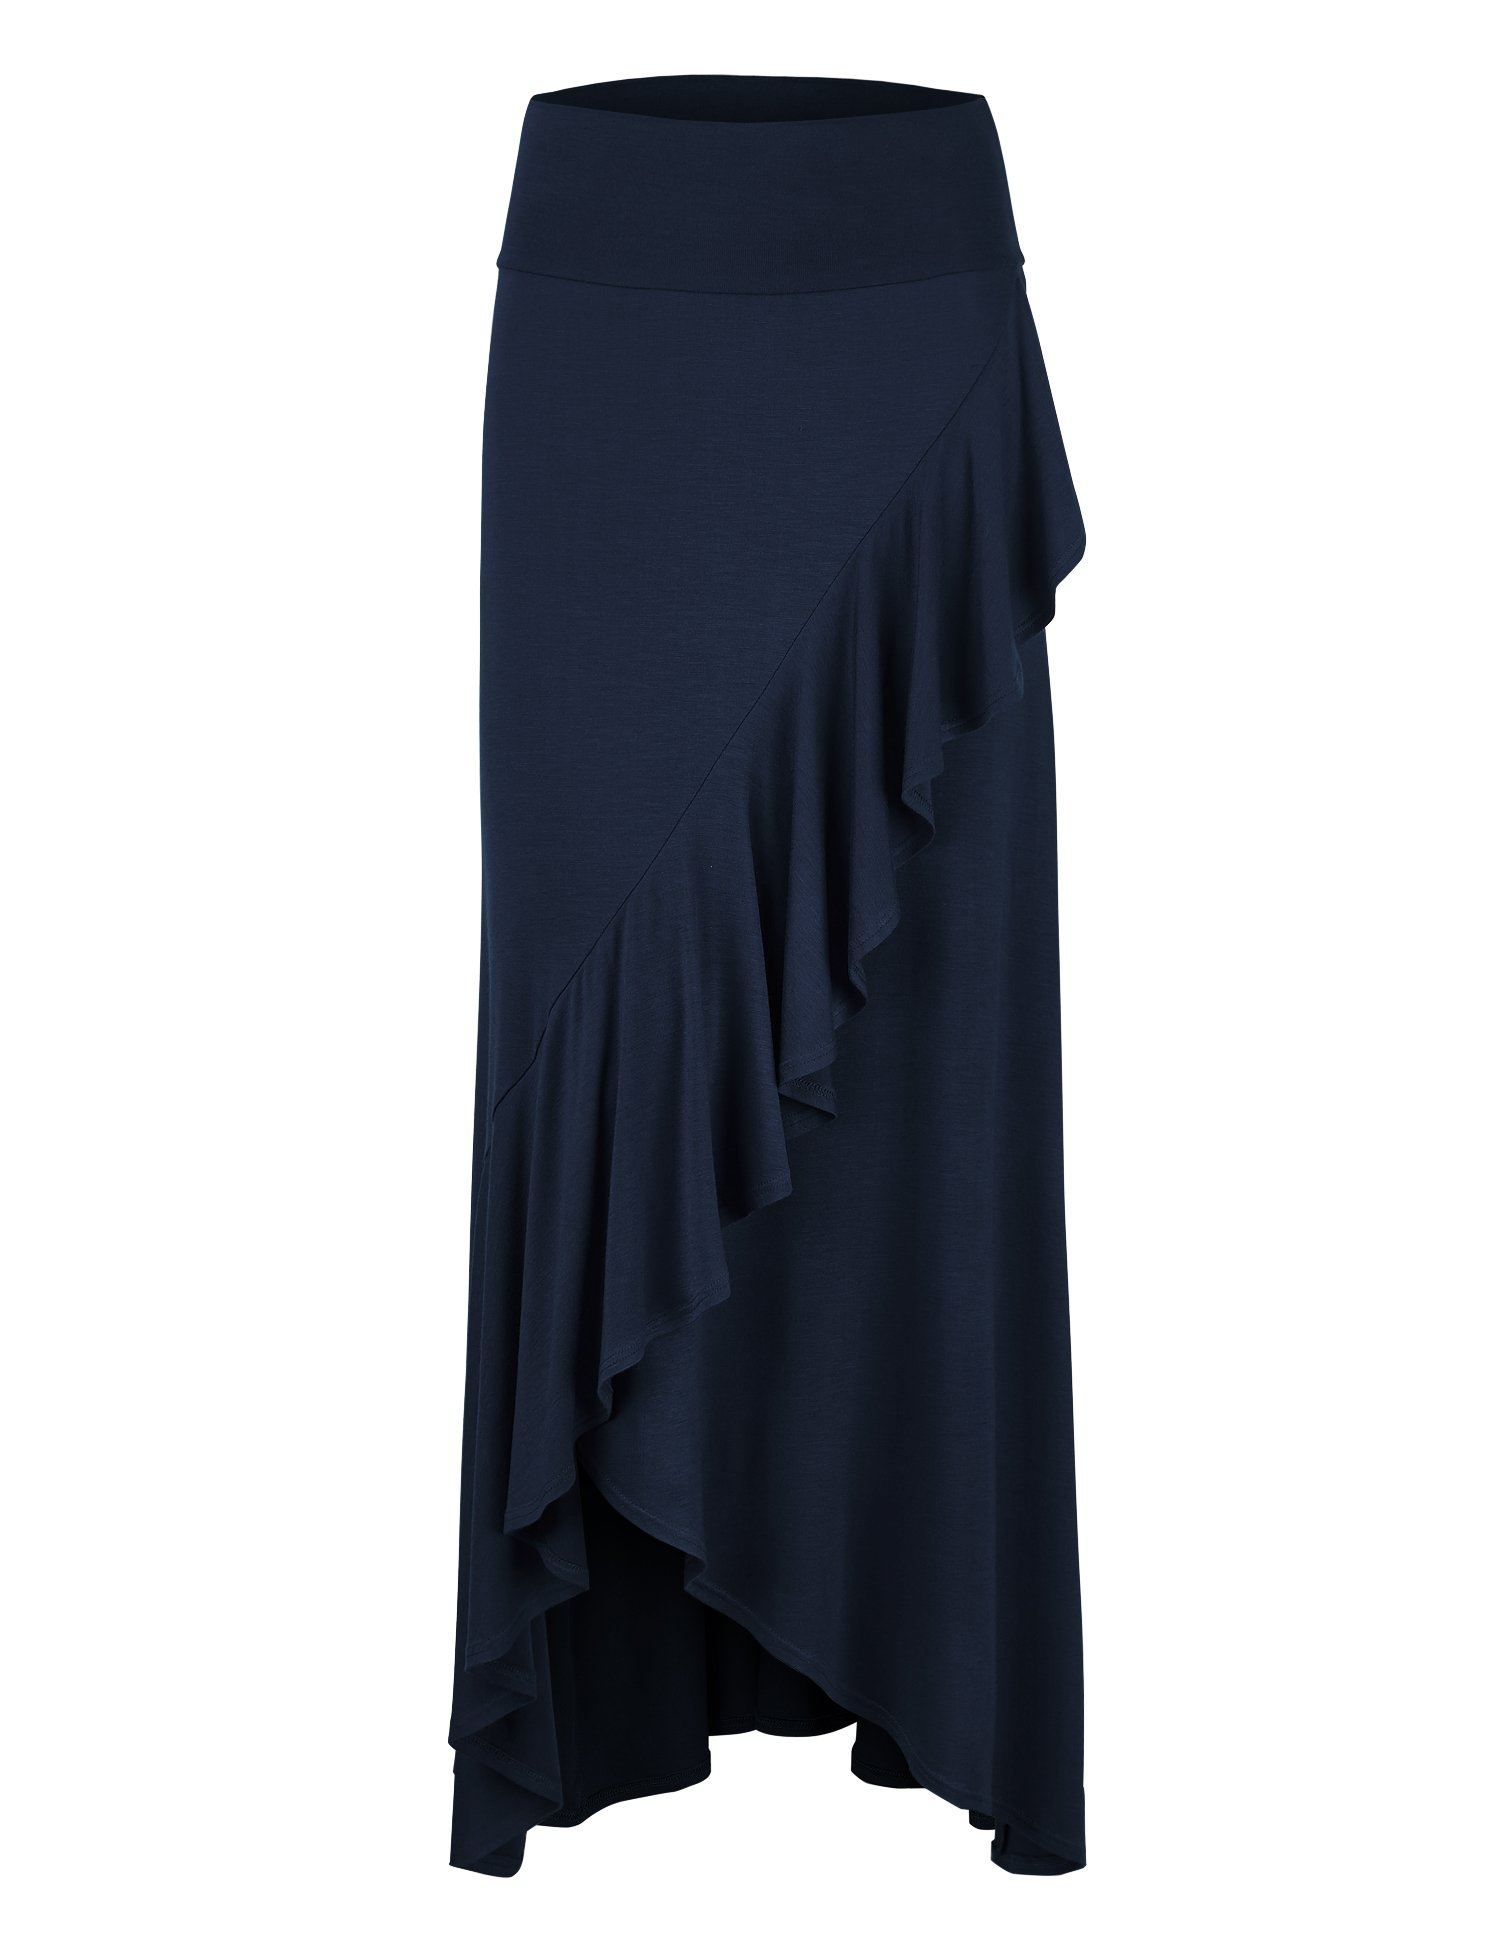 WB1356 Womens Wrapped High Low Ruffle Maxi Skirt XXXL NAVY